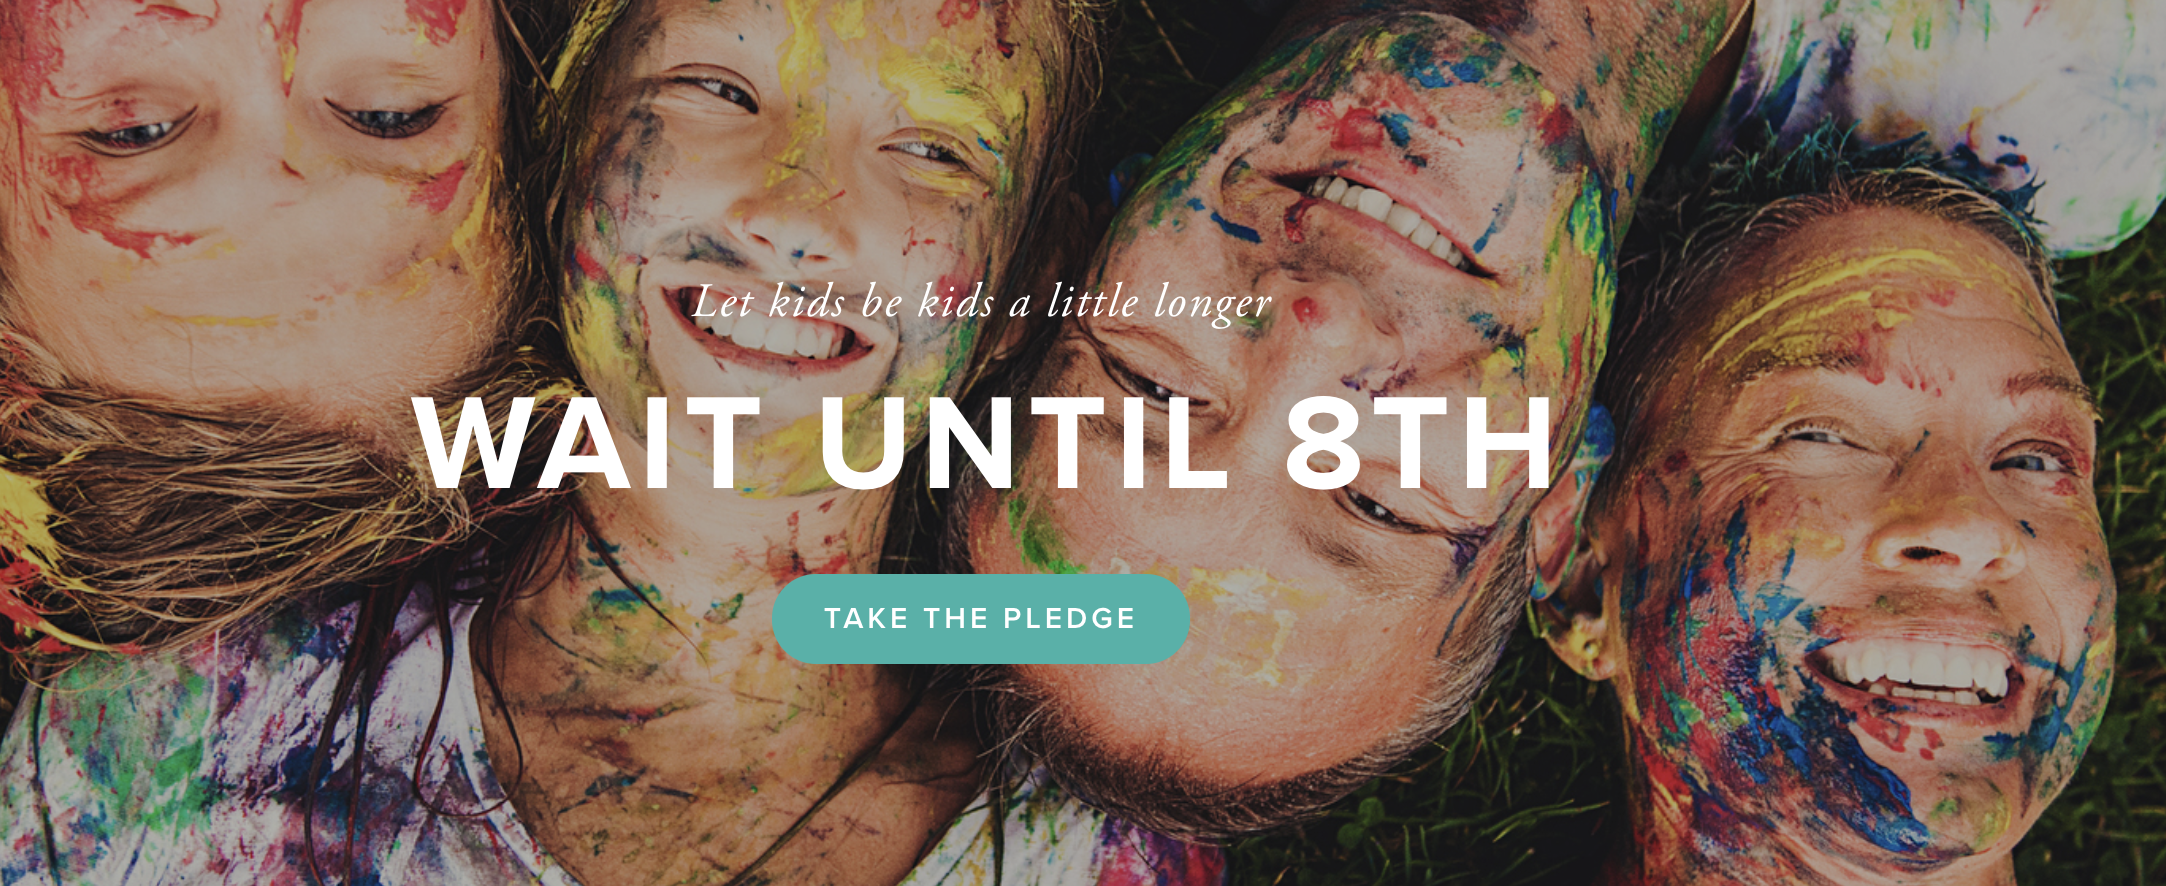 teens and technology pledge